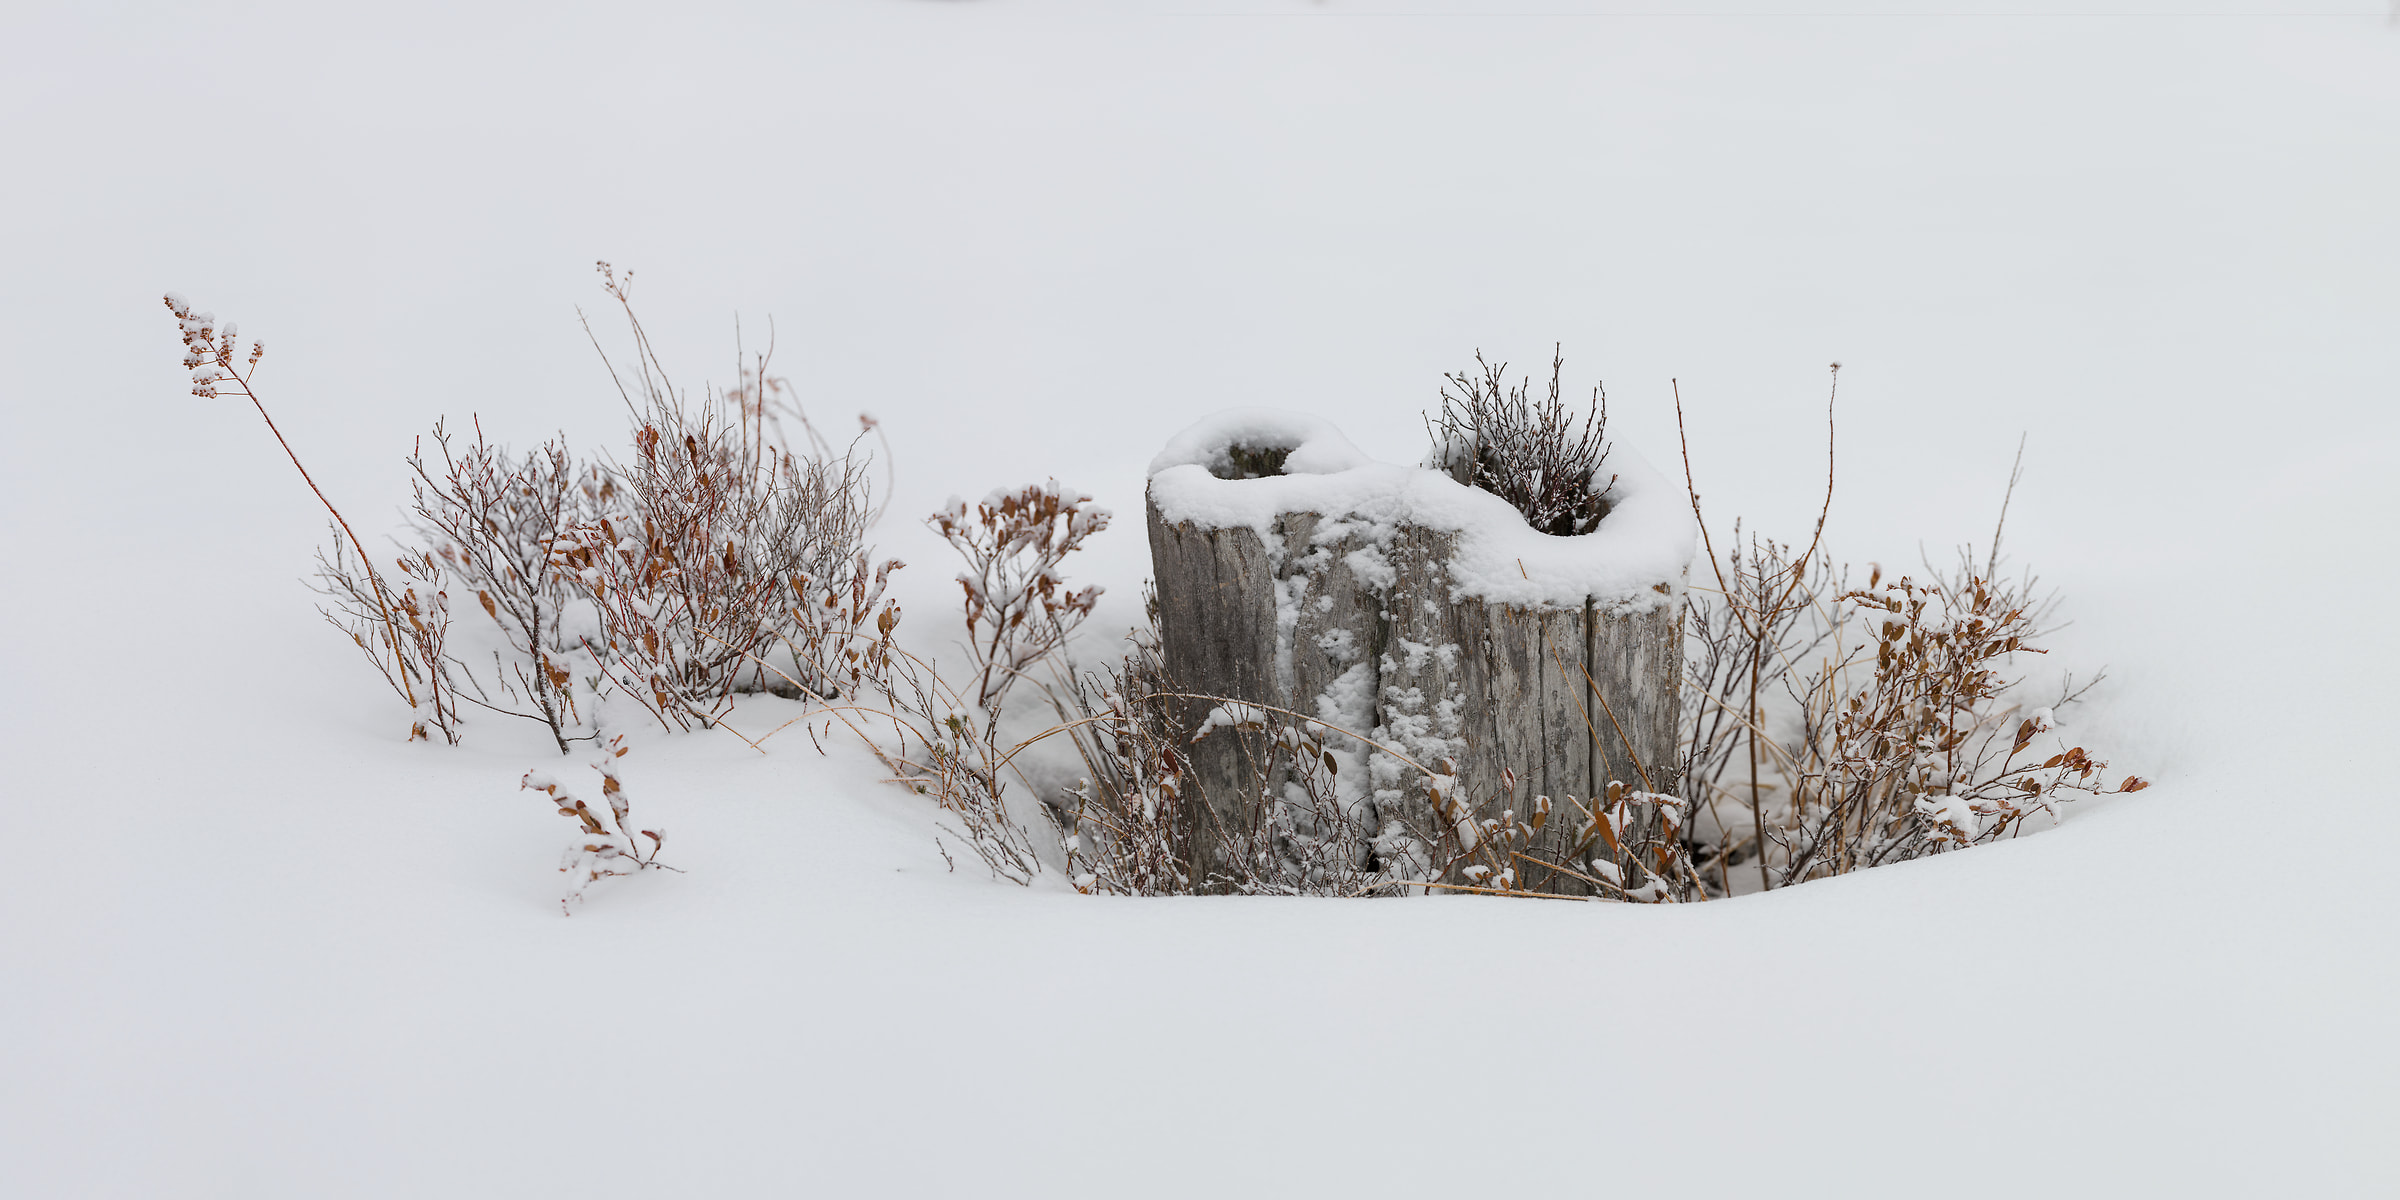 395 megapixels! A very high resolution, large-format photo print of bushes and a stump in the snow; fine art nature photograph created by Aaron Priest on Golden Road in Maine, New England